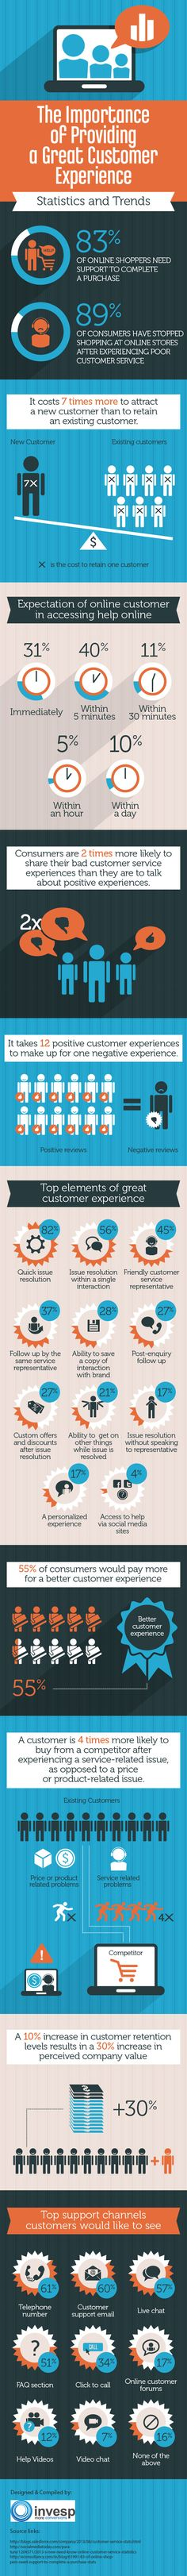 Why Is Customer Service Important to an Organization